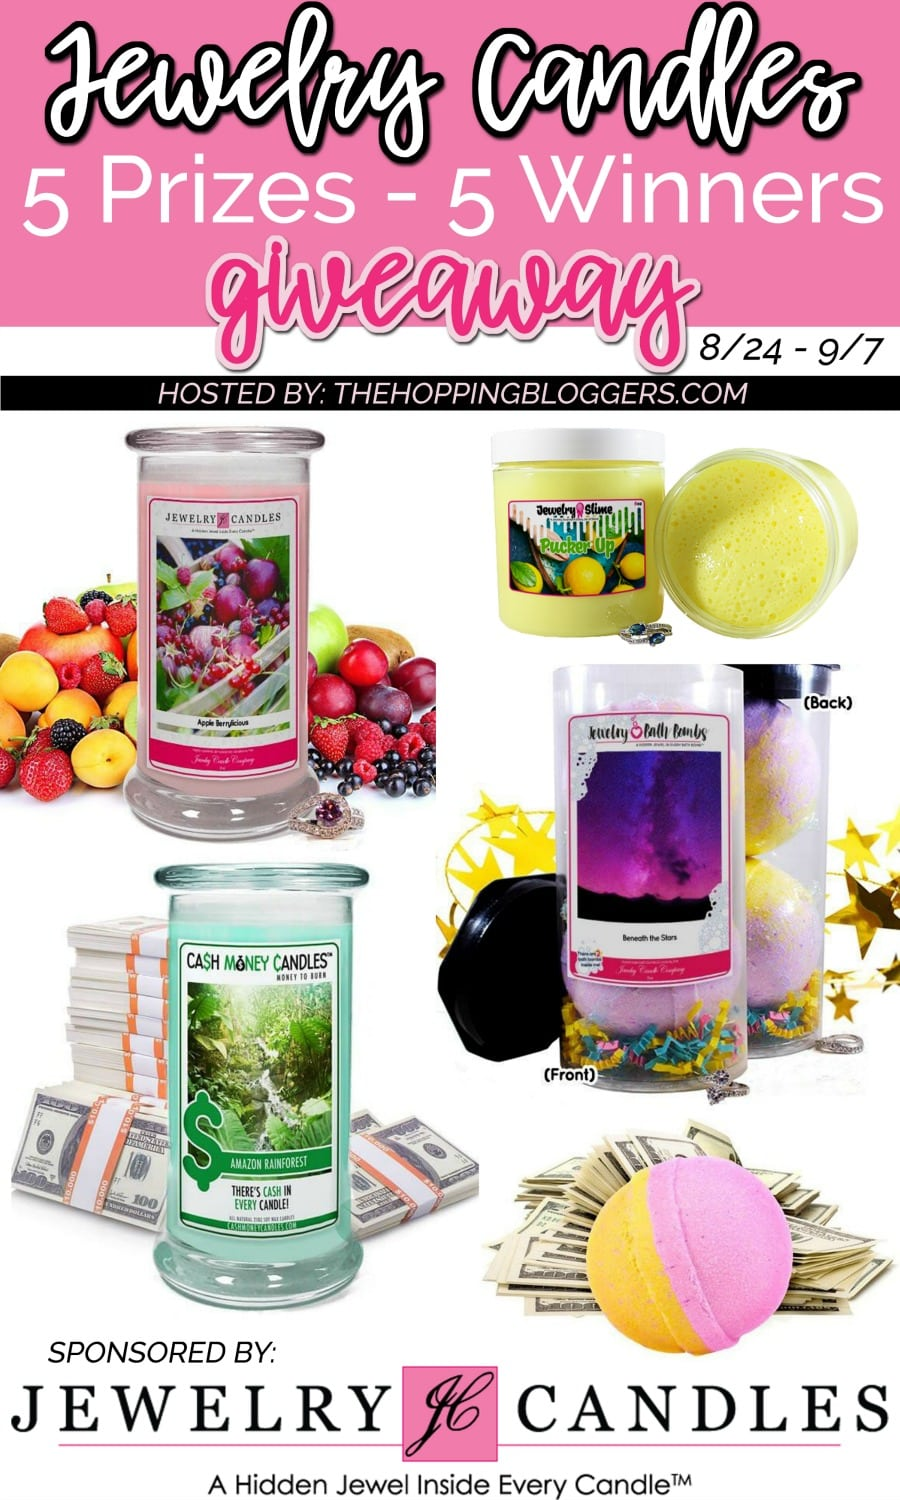 Jewelry Candles and Bath Bombs Giveaway - abccrreativelearning.com